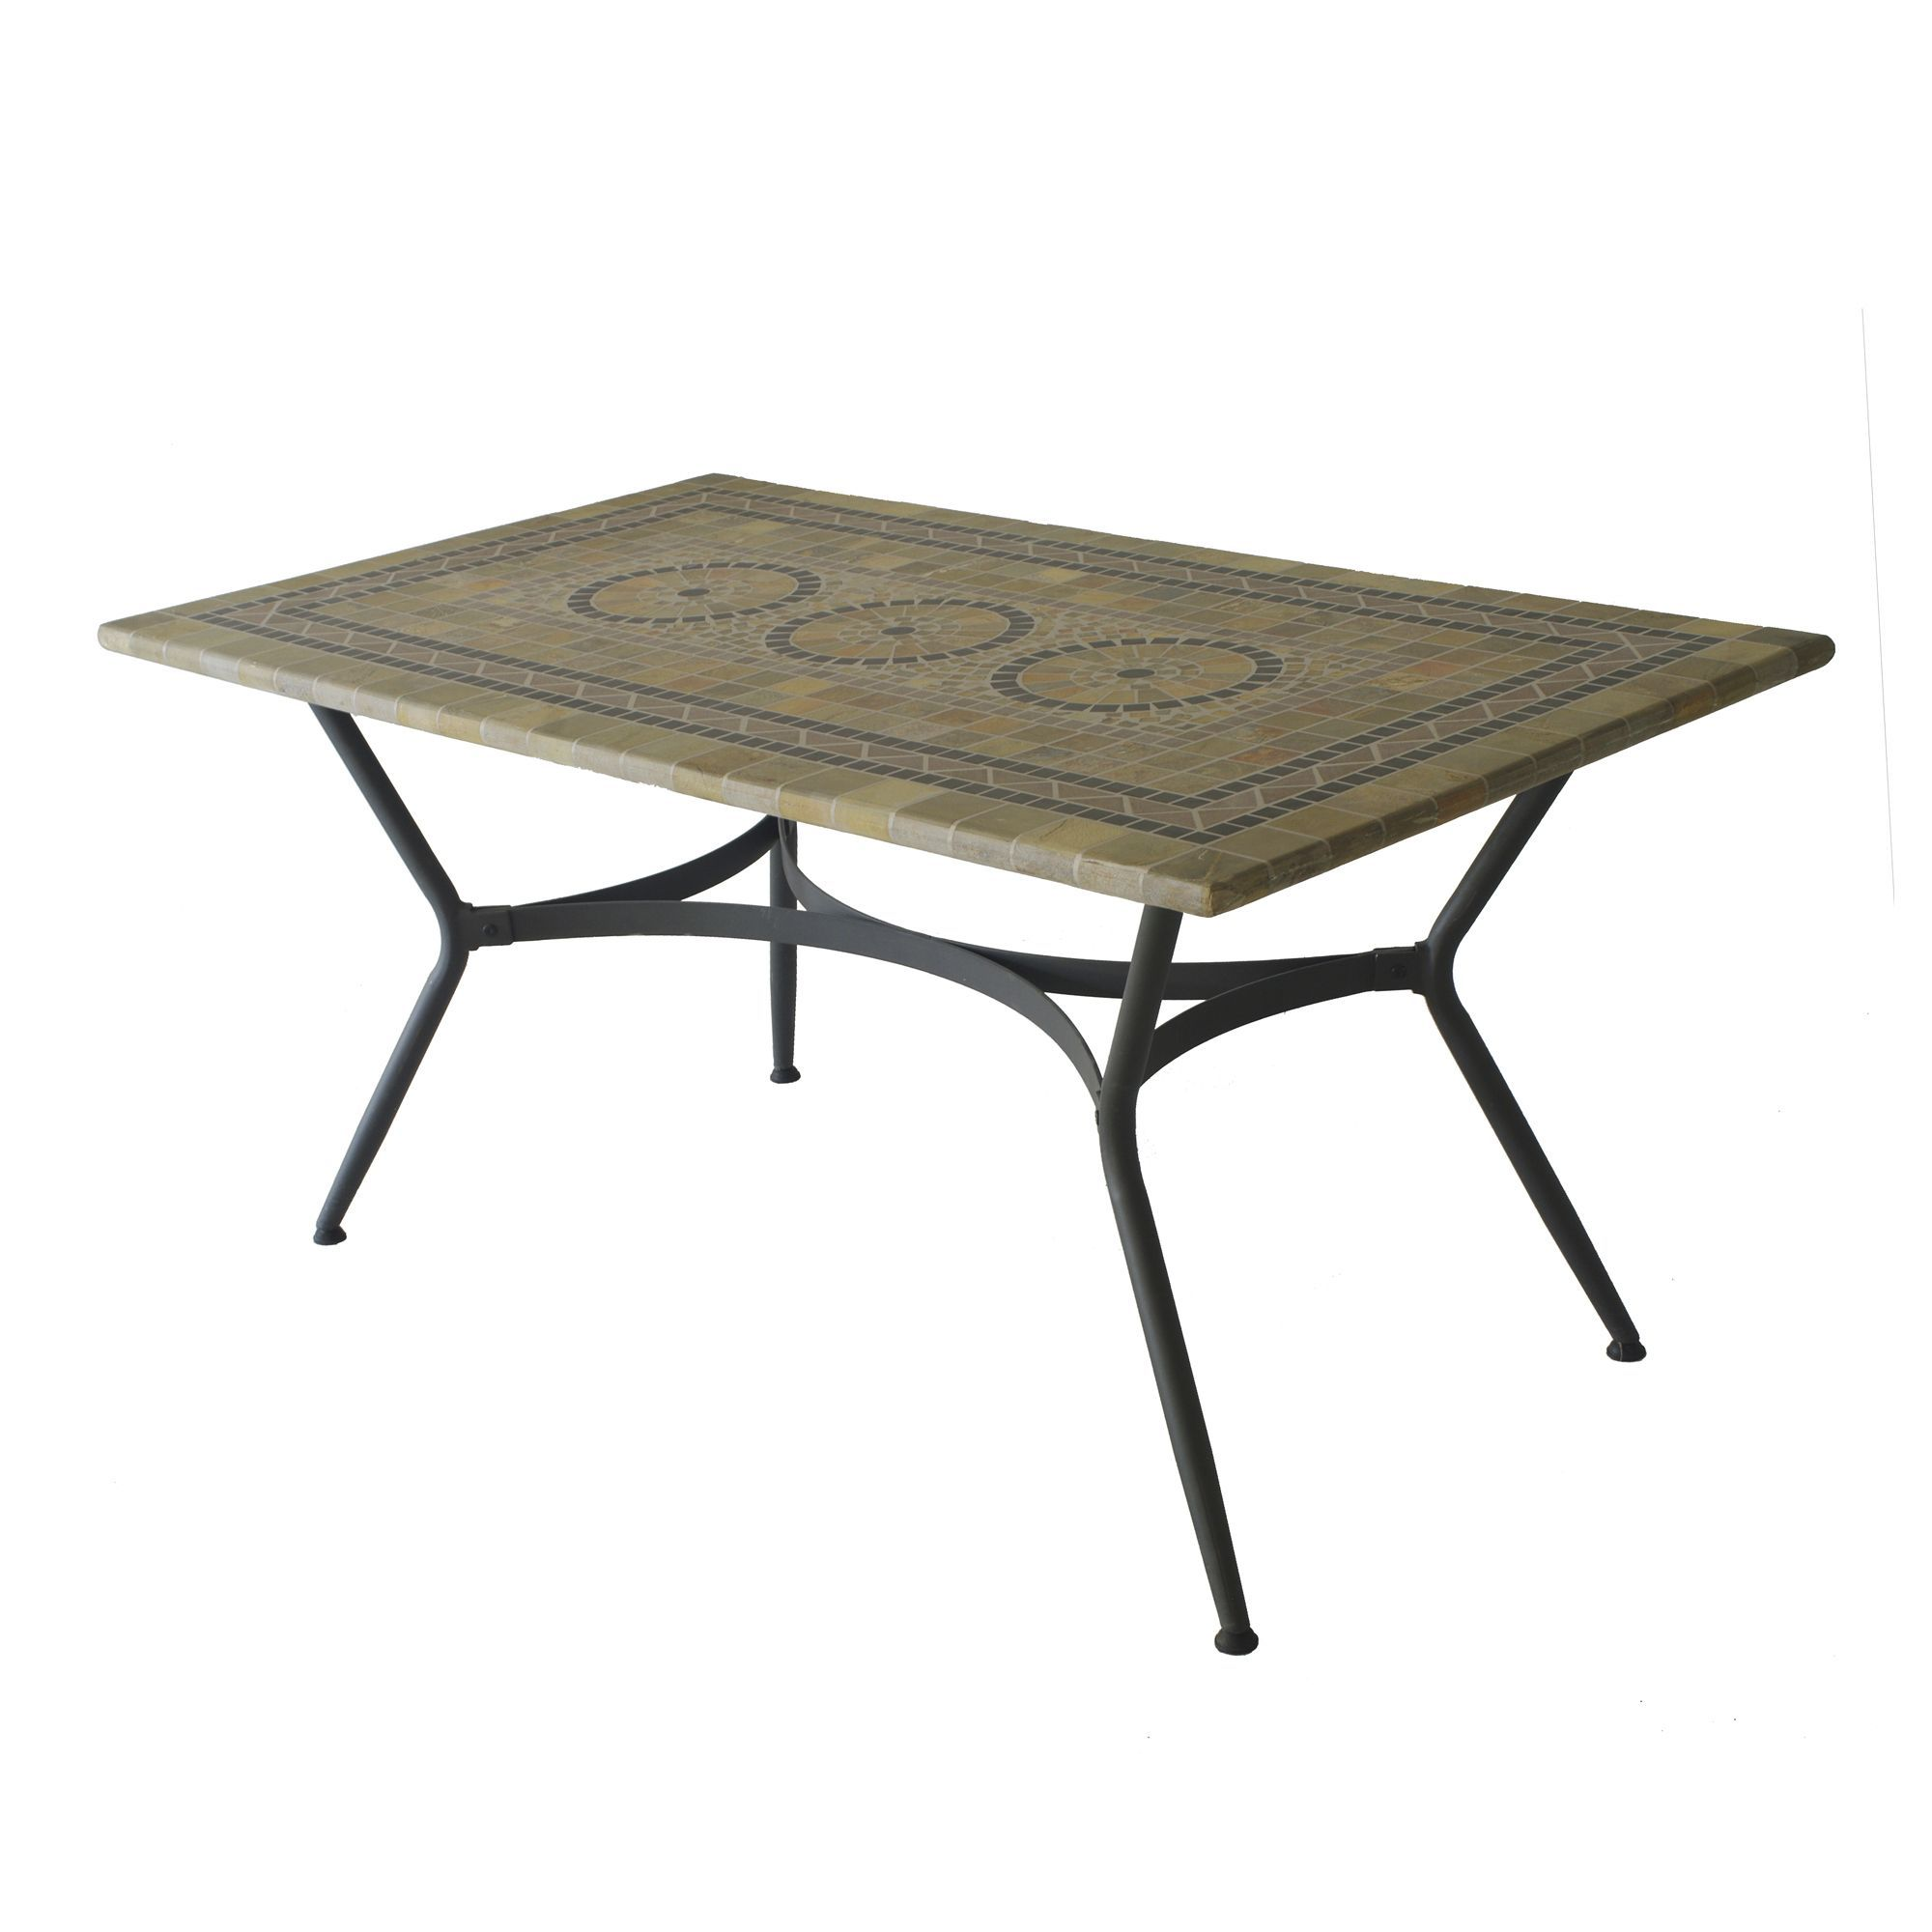 Table de jardin rectangulaire mosa que noir oxyd agadir for Deco table de jardin